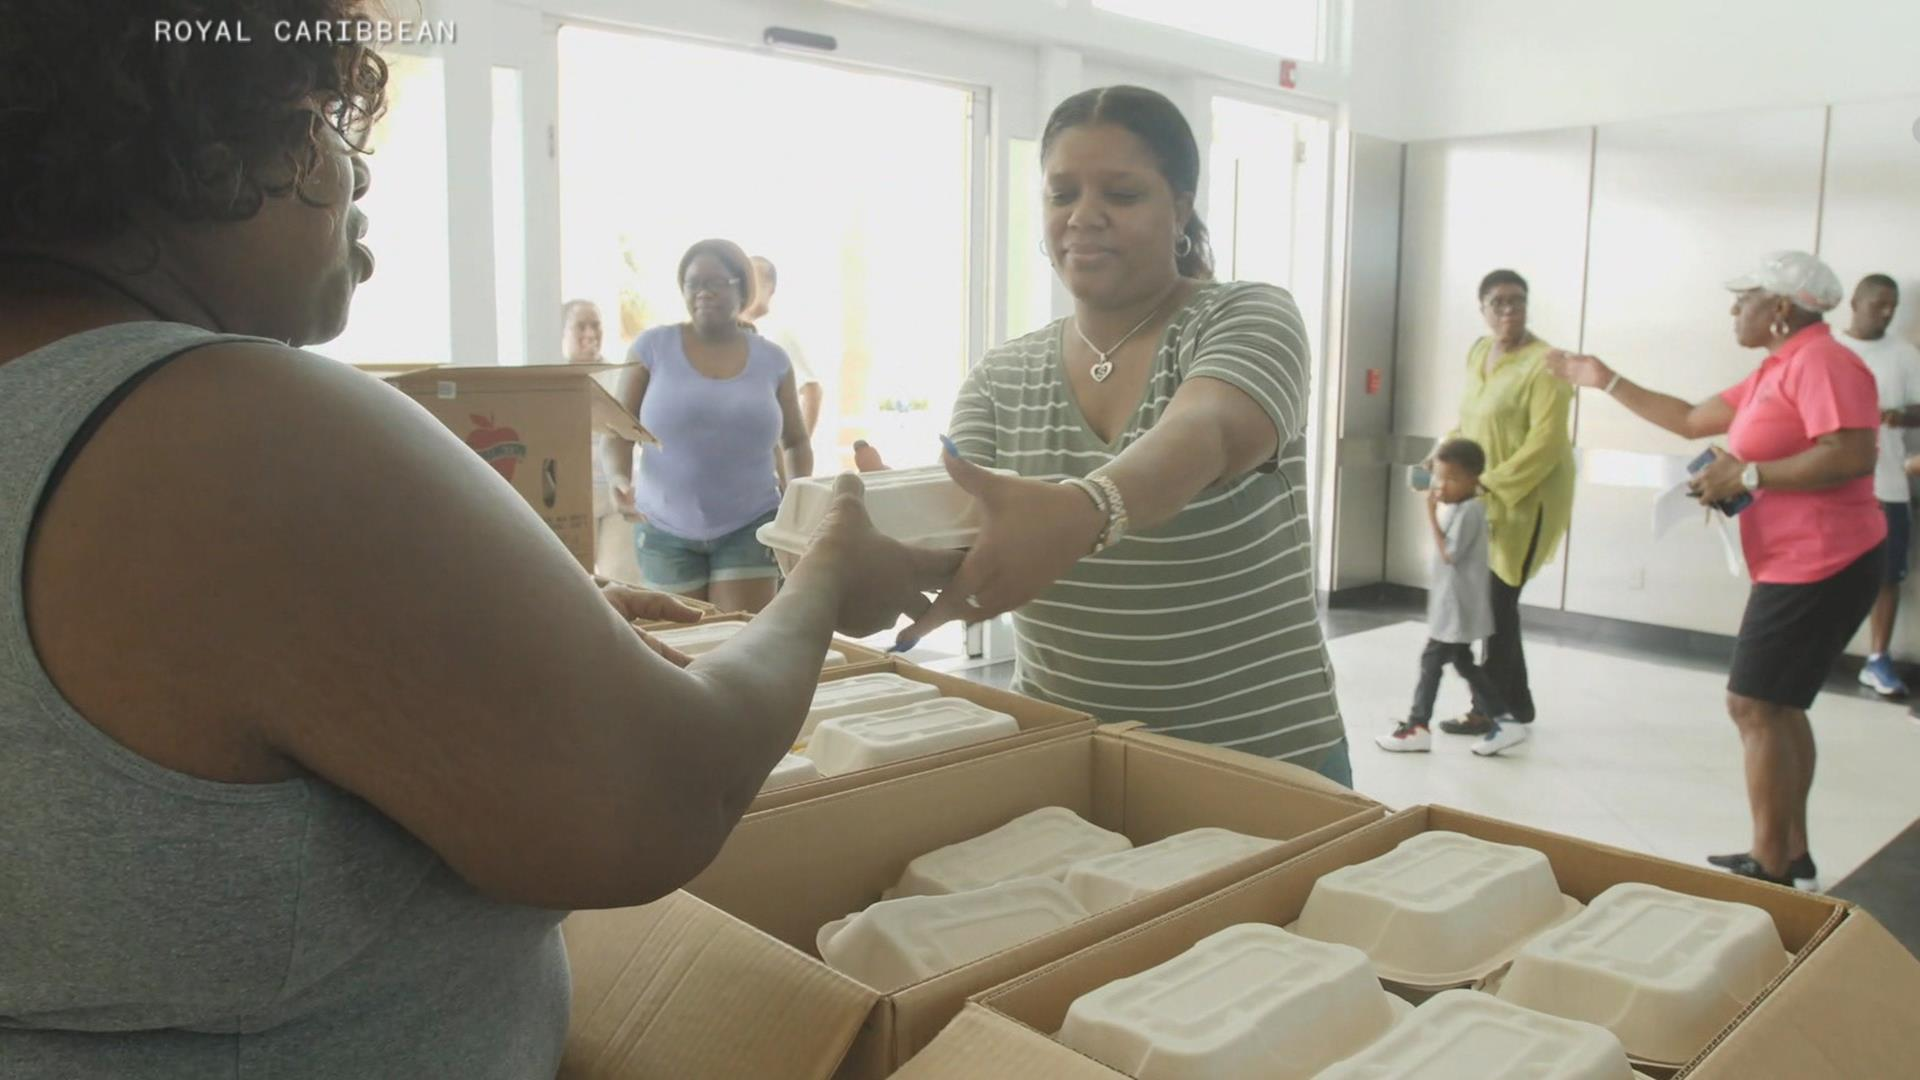 After Hurricane Dorian, Celebrity cruise ship in Bahamas reroutes to deliver food, aid